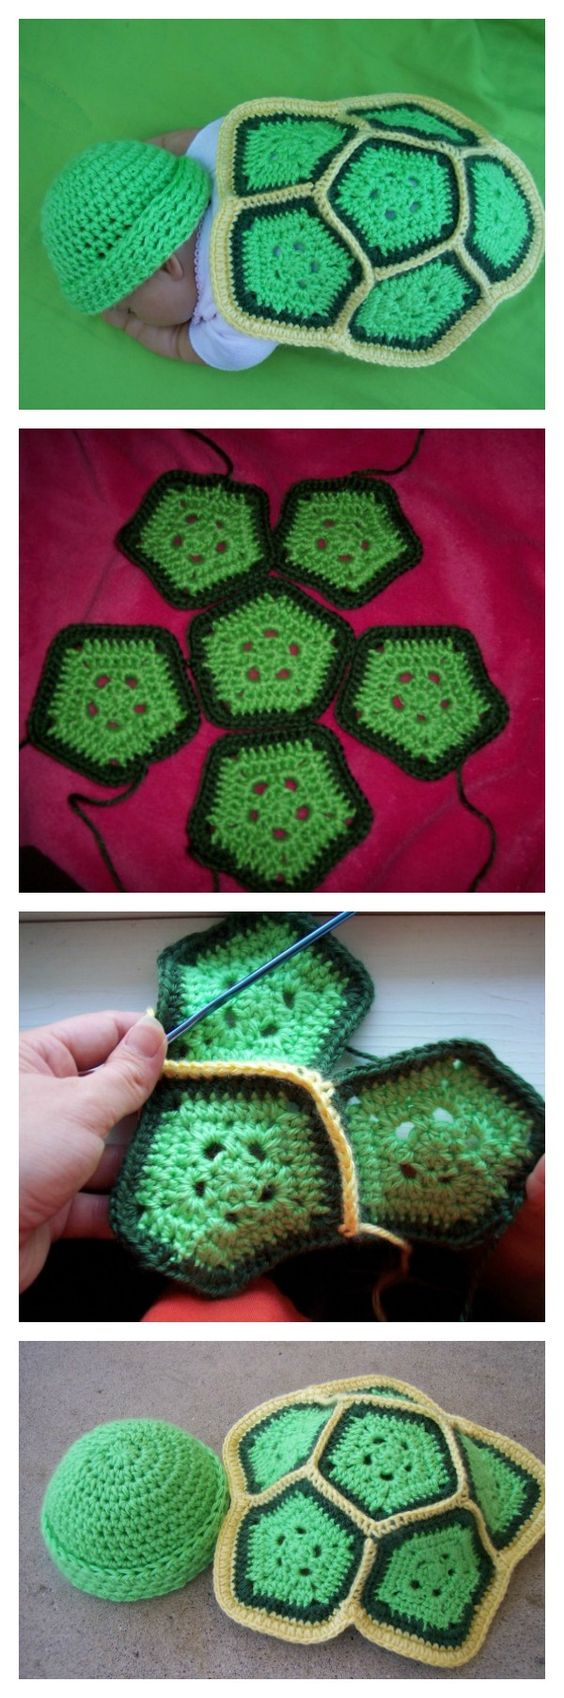 Free Crochet Patterns For Newborn Props : Pinterest The world s catalog of ideas